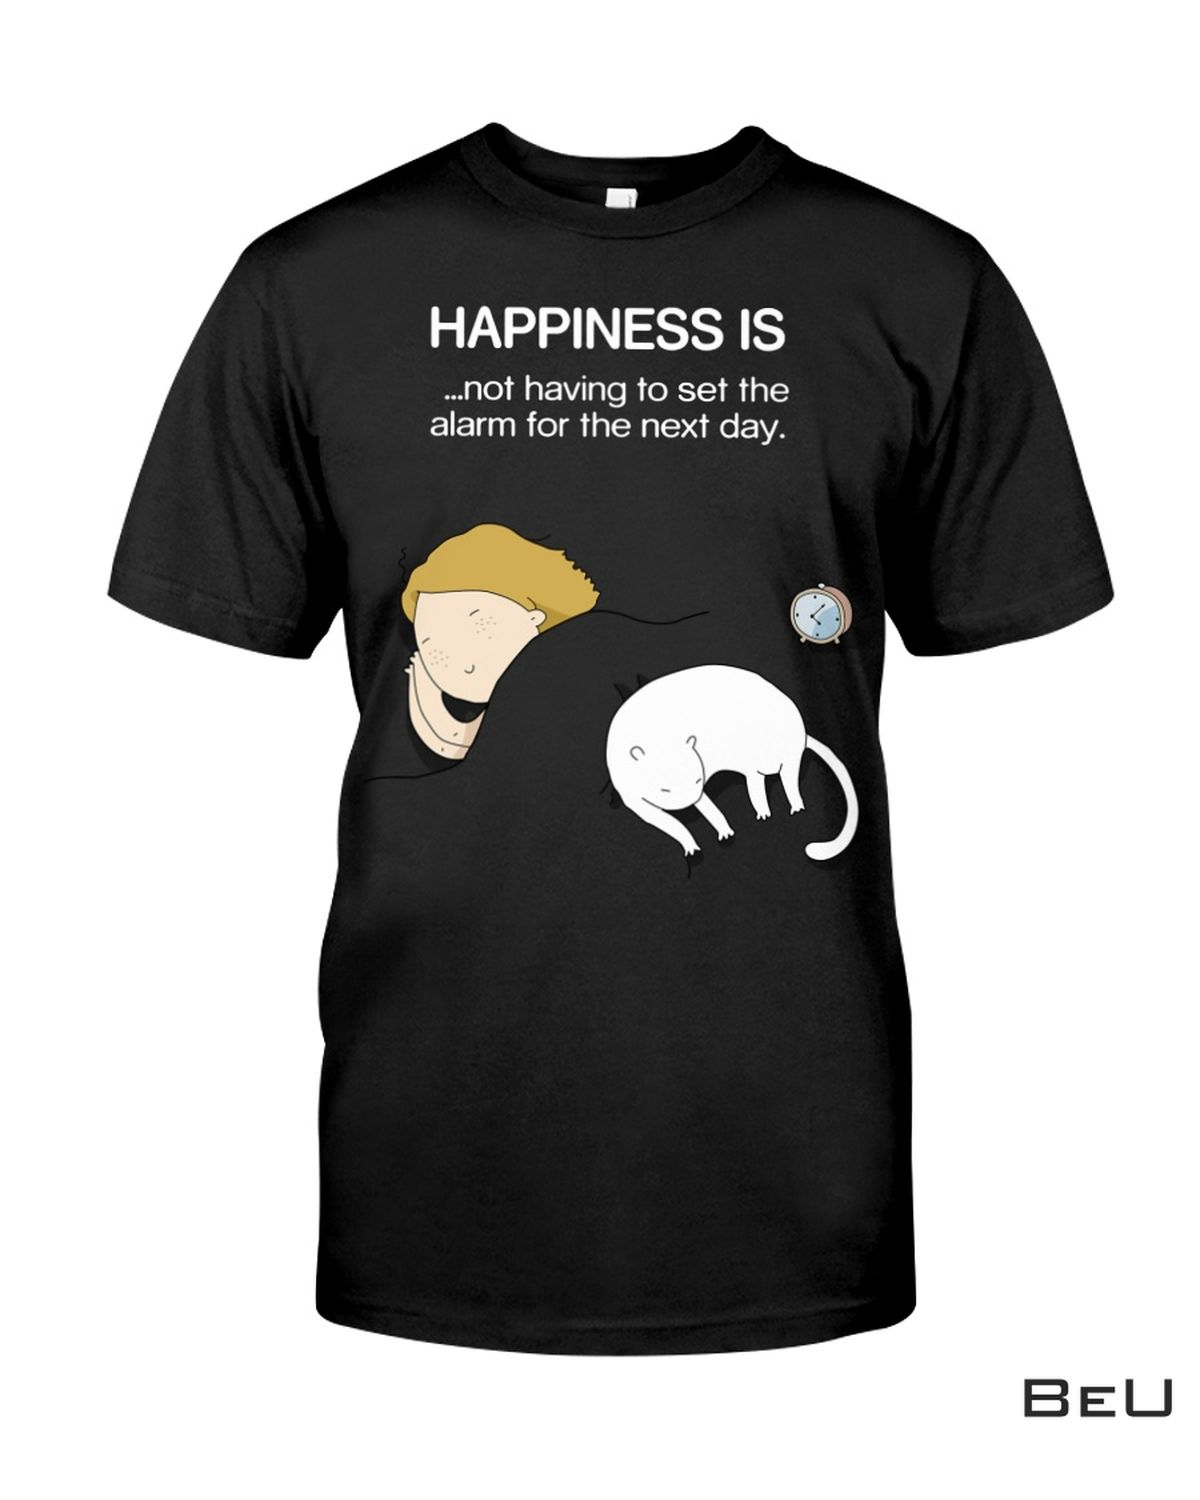 Happiness Is Not Having To Set The Alarm For The Next Day Shirt, hoodie, tank top